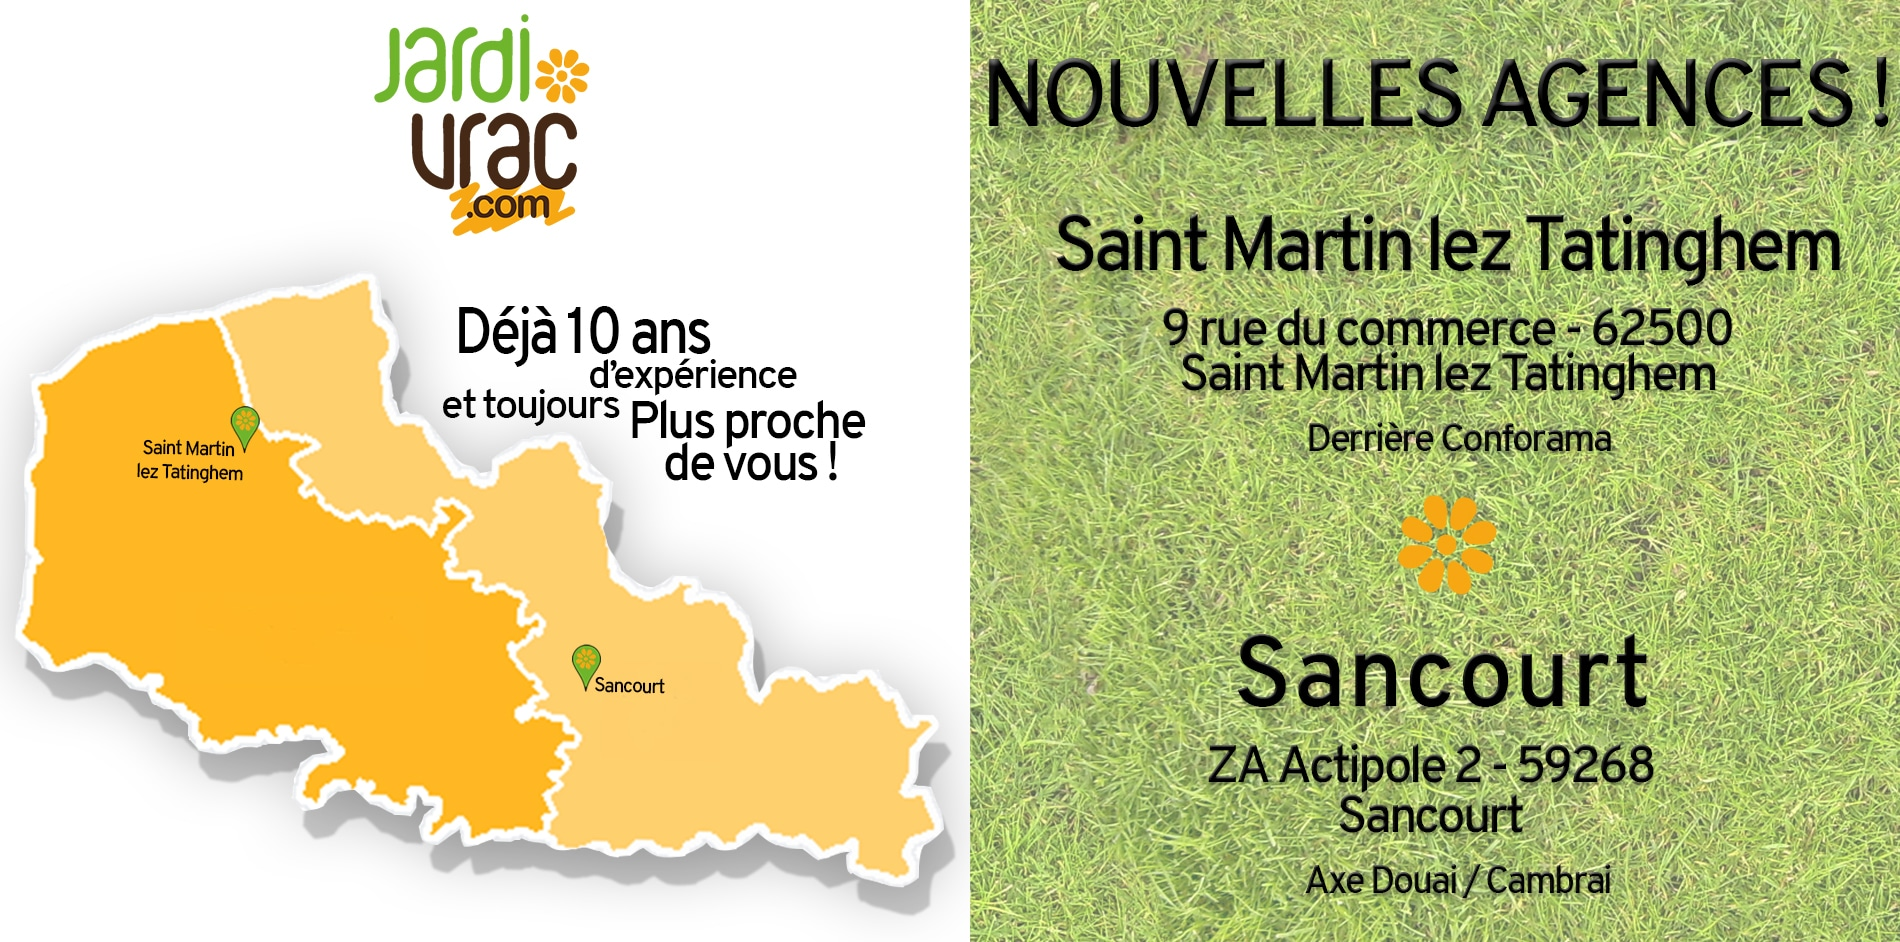 nouvelle agence !